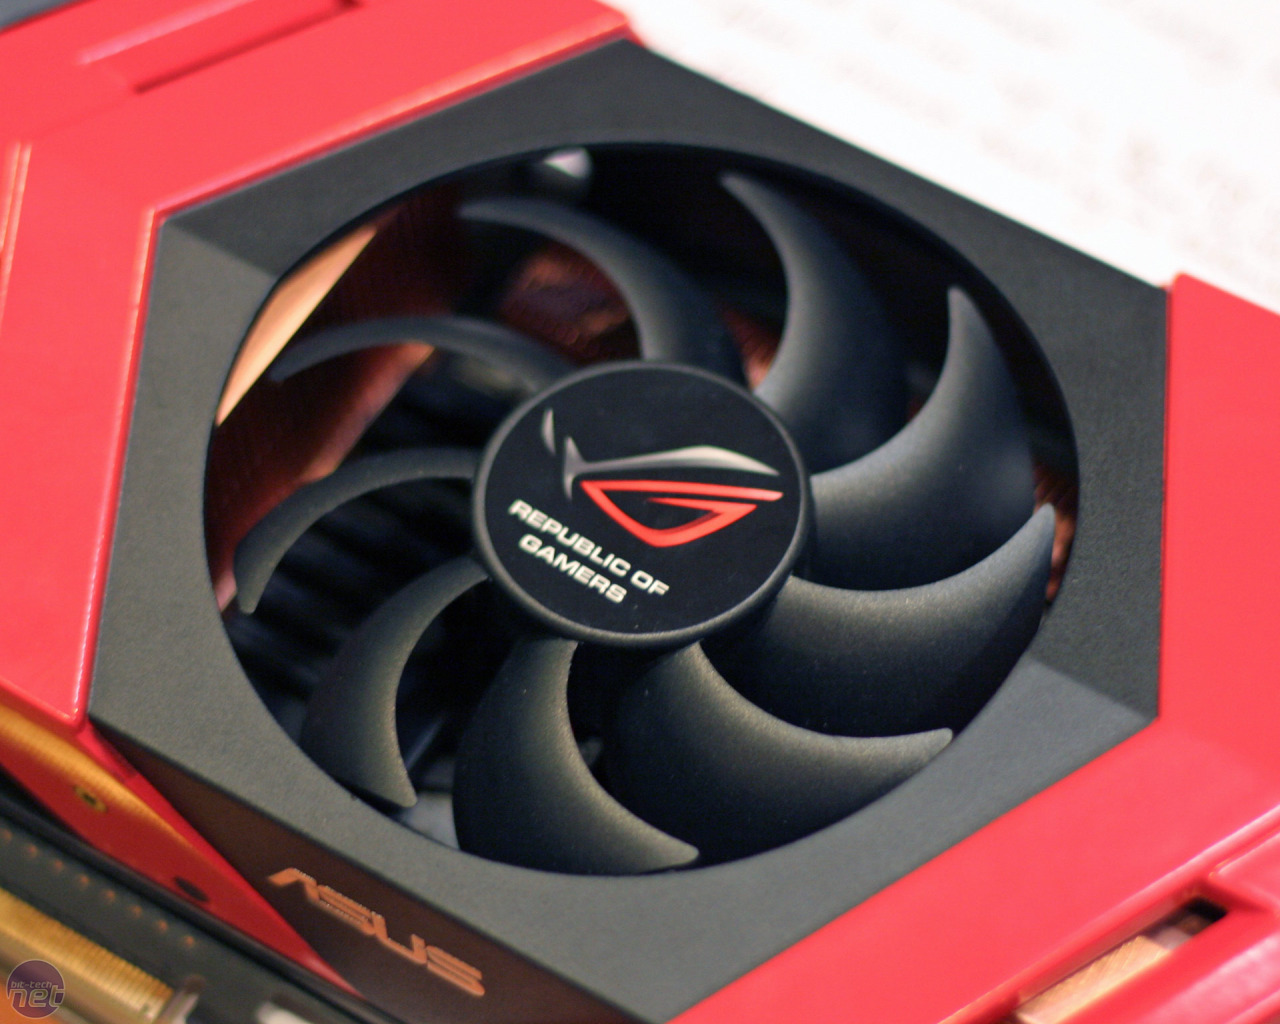 http://images.bit-tech.net/content_images/2010/06/asus-ares-and-immensity-technology-preview/ares-5.jpg